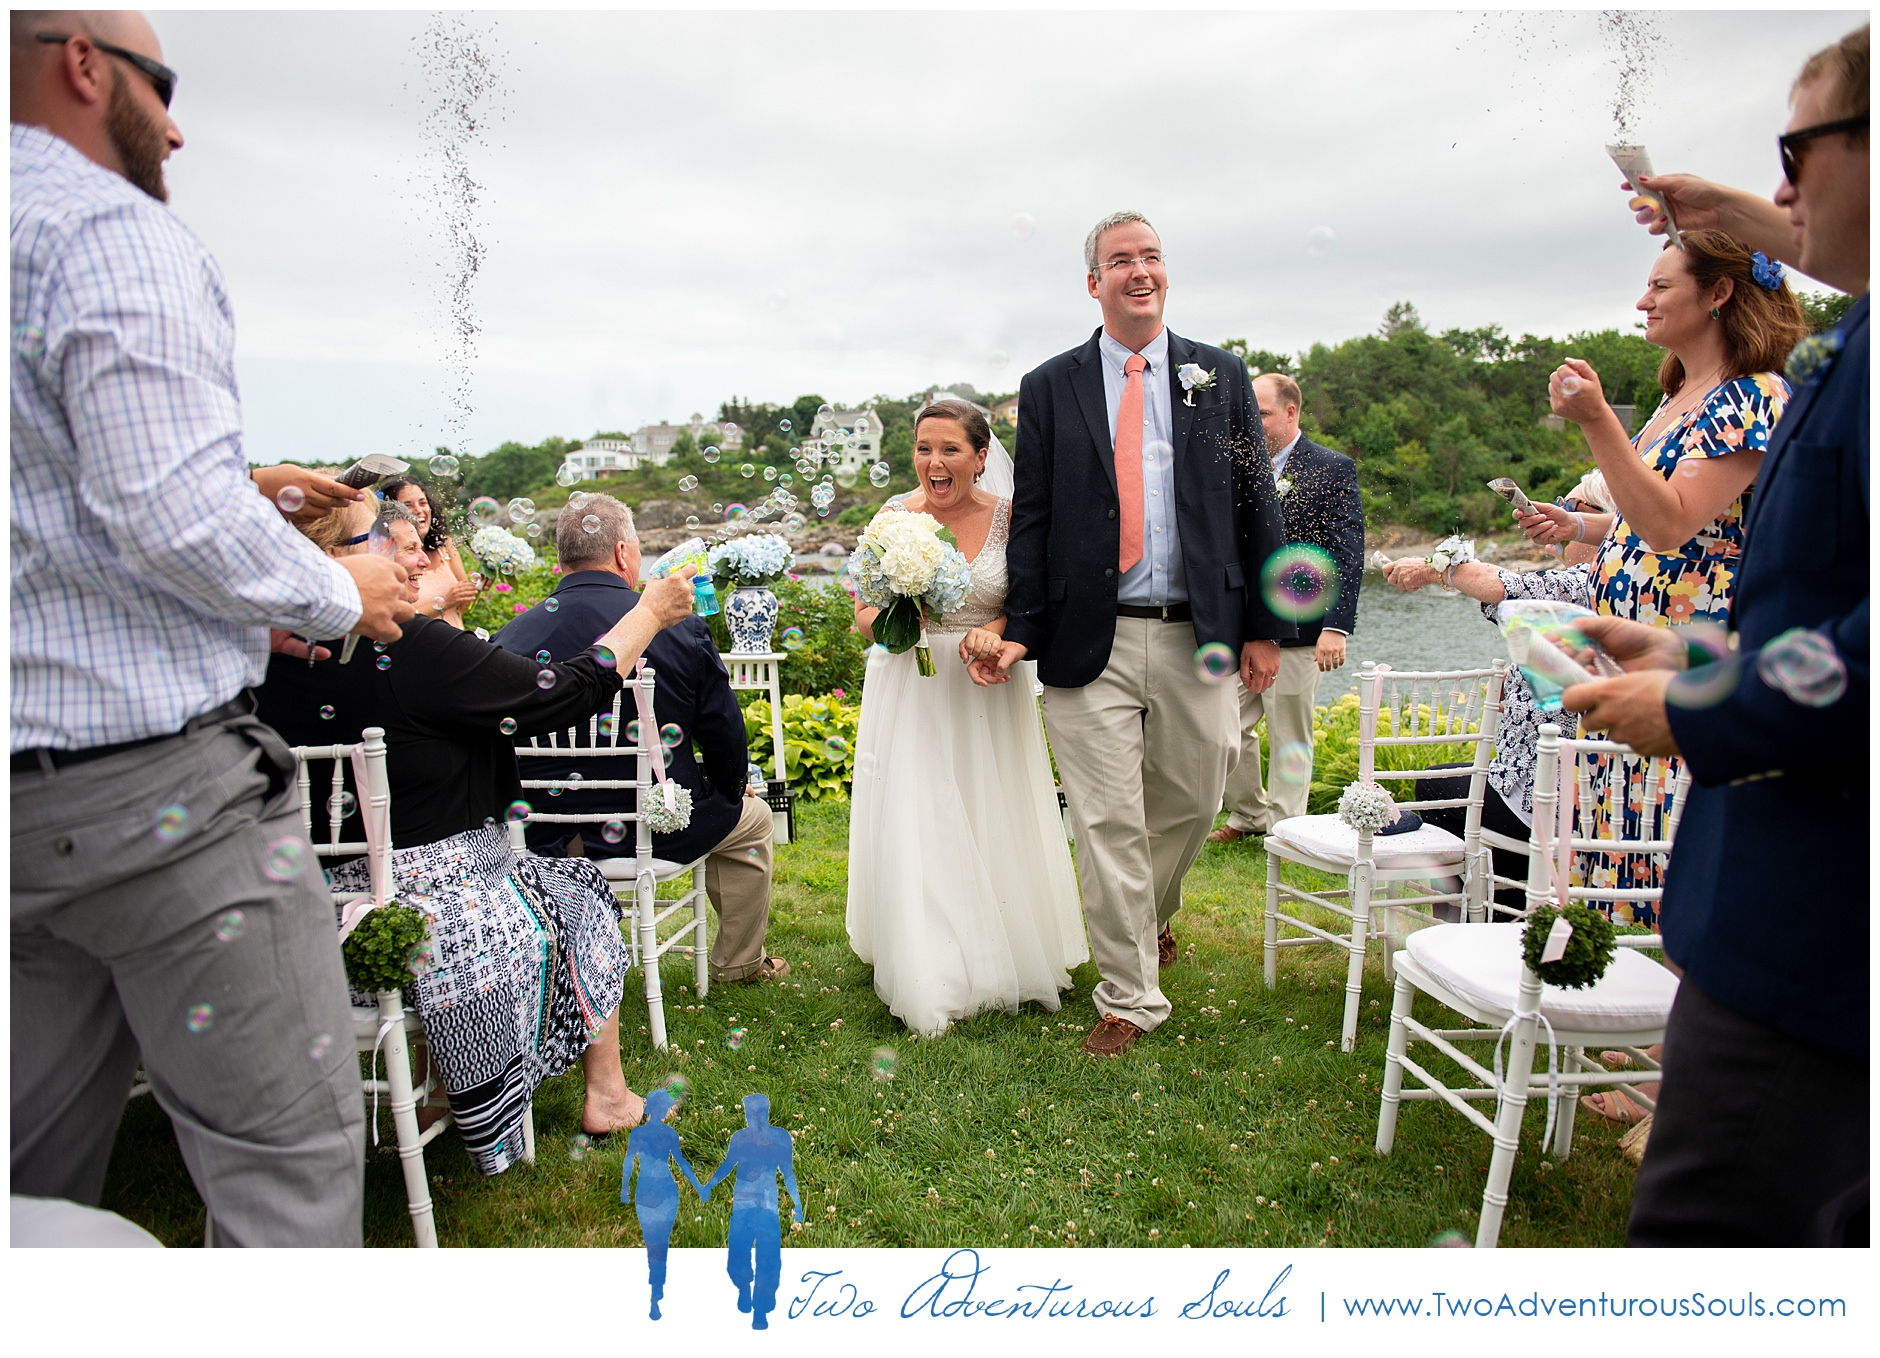 Maine Wedding Photographers, Ogunquit Wedding Photographers, Maine Elopement Photographers, Two Adventurous Souls-080619_0016.jpg